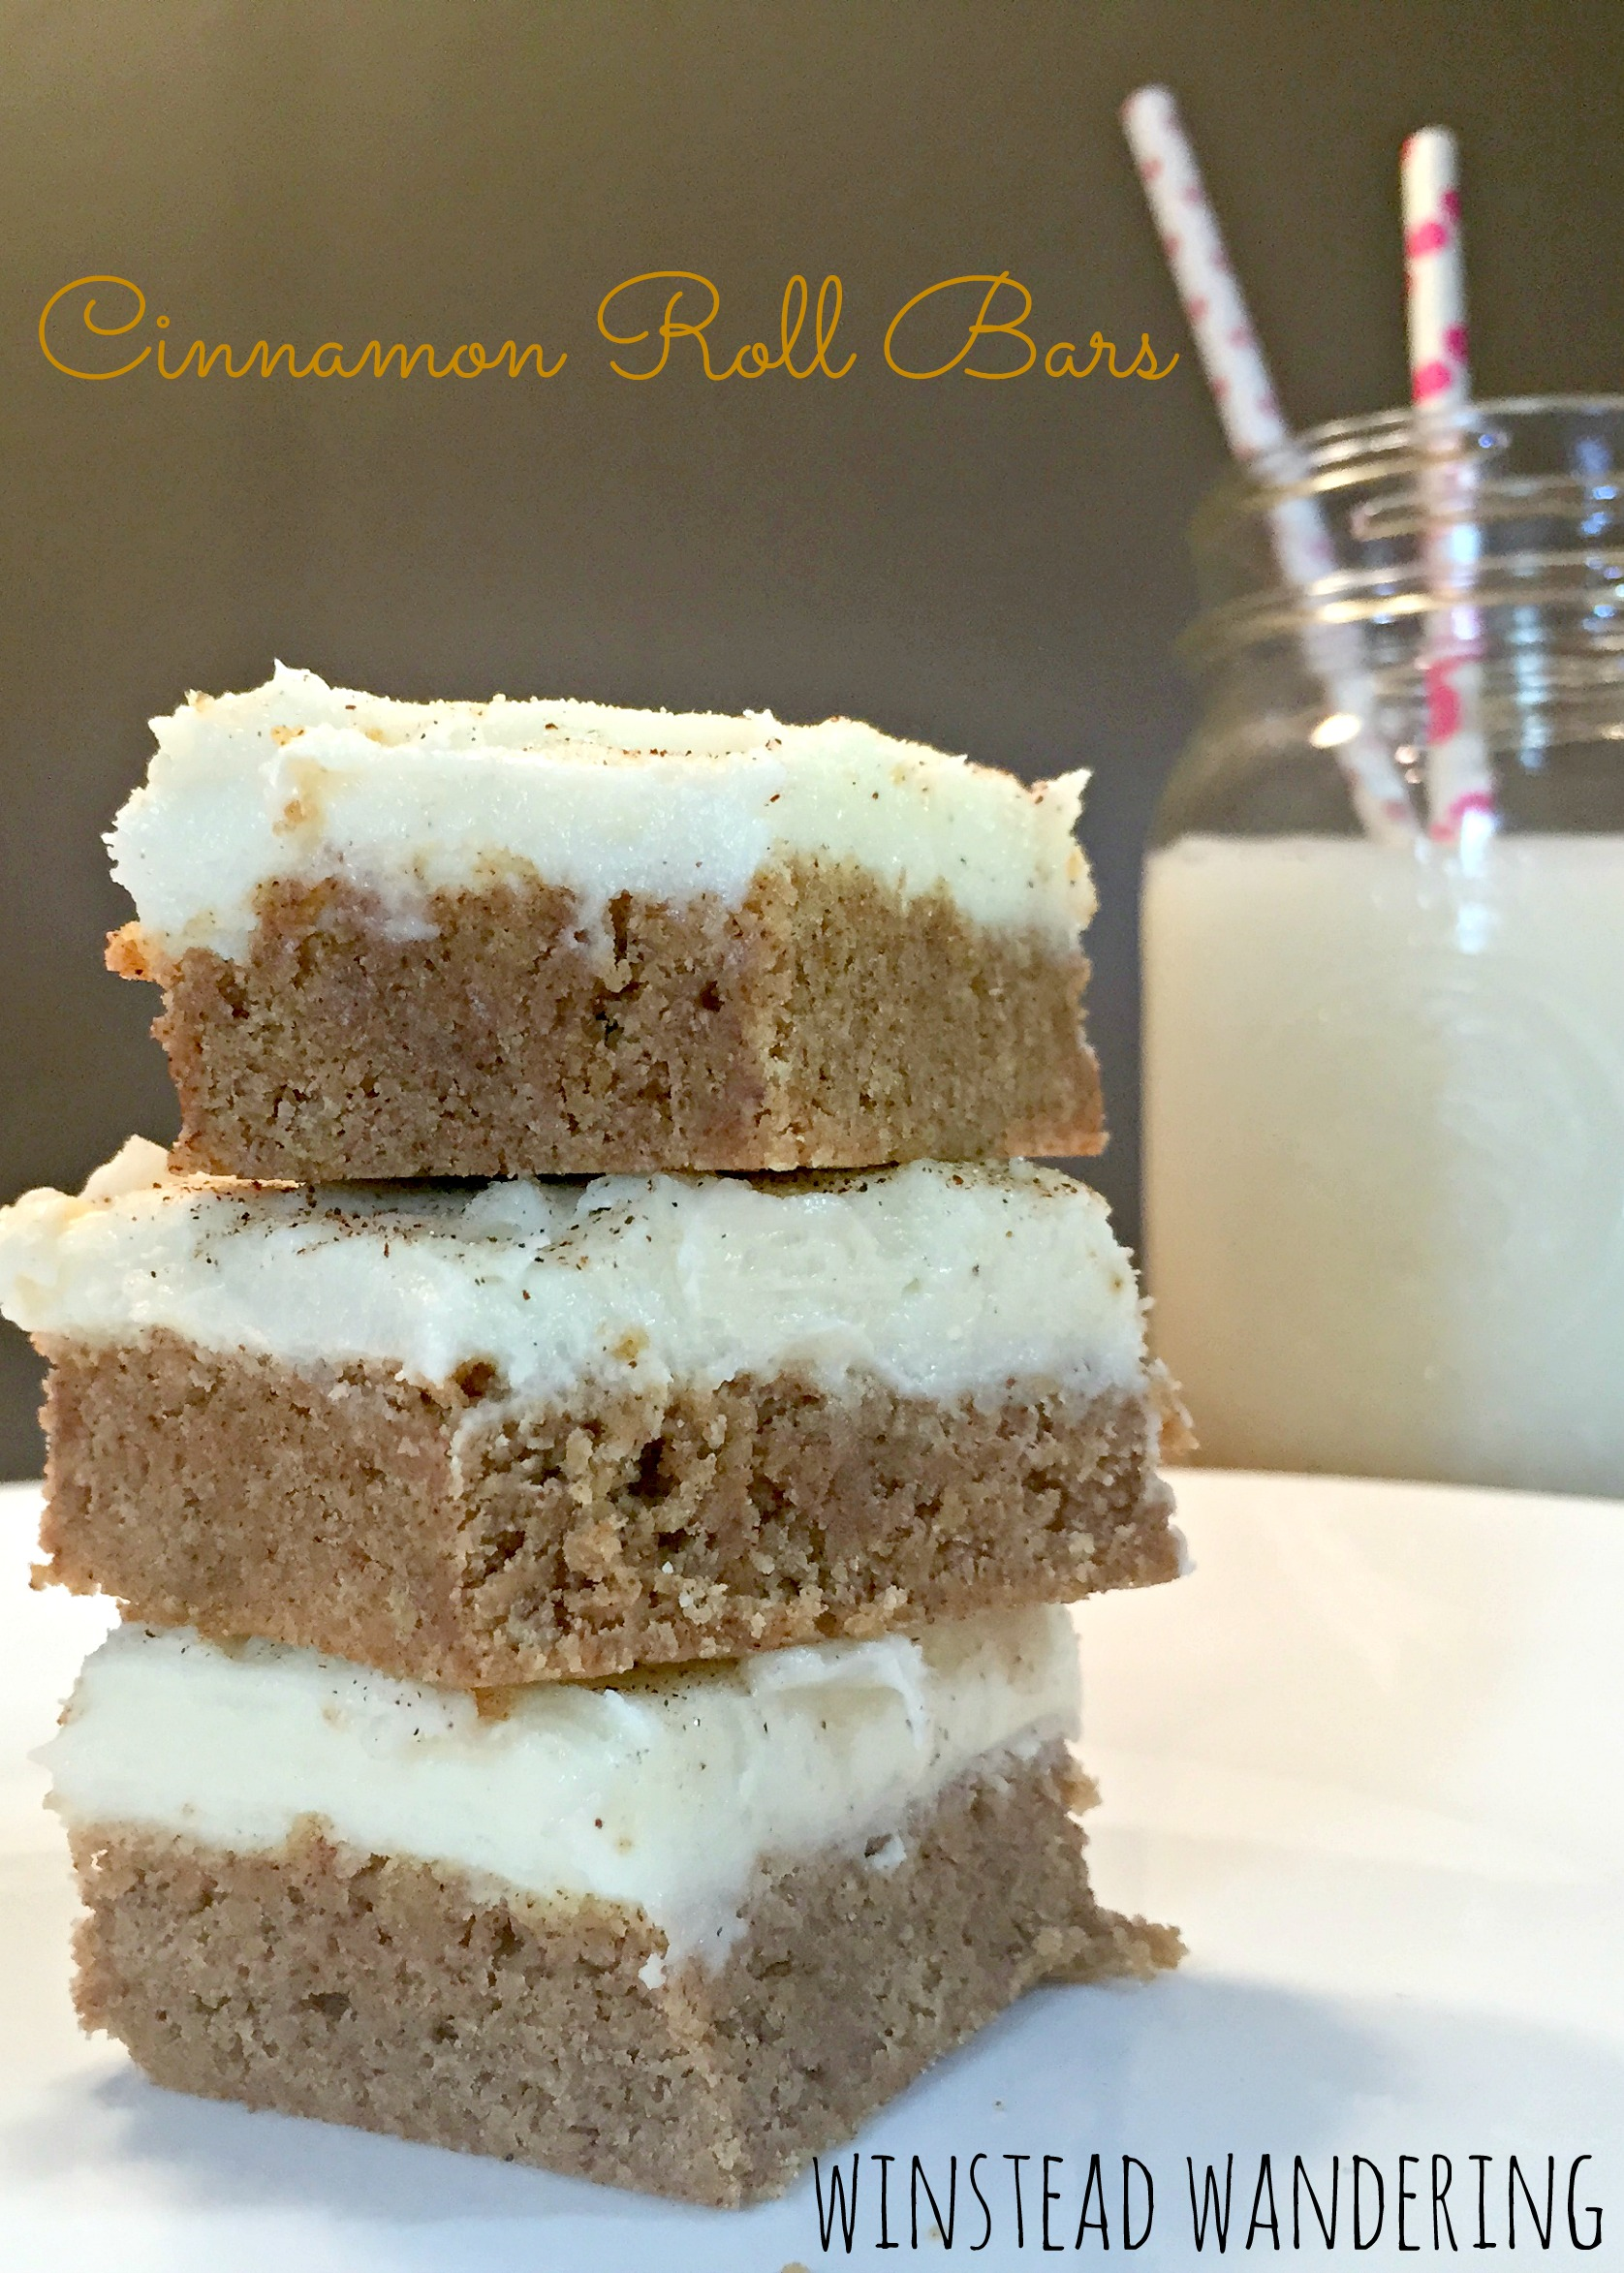 the delicious richness of a cinnamon loaded with cream cheese frosting is combined with the ease of a box cake mix. the result is a must-try | winstead wandering